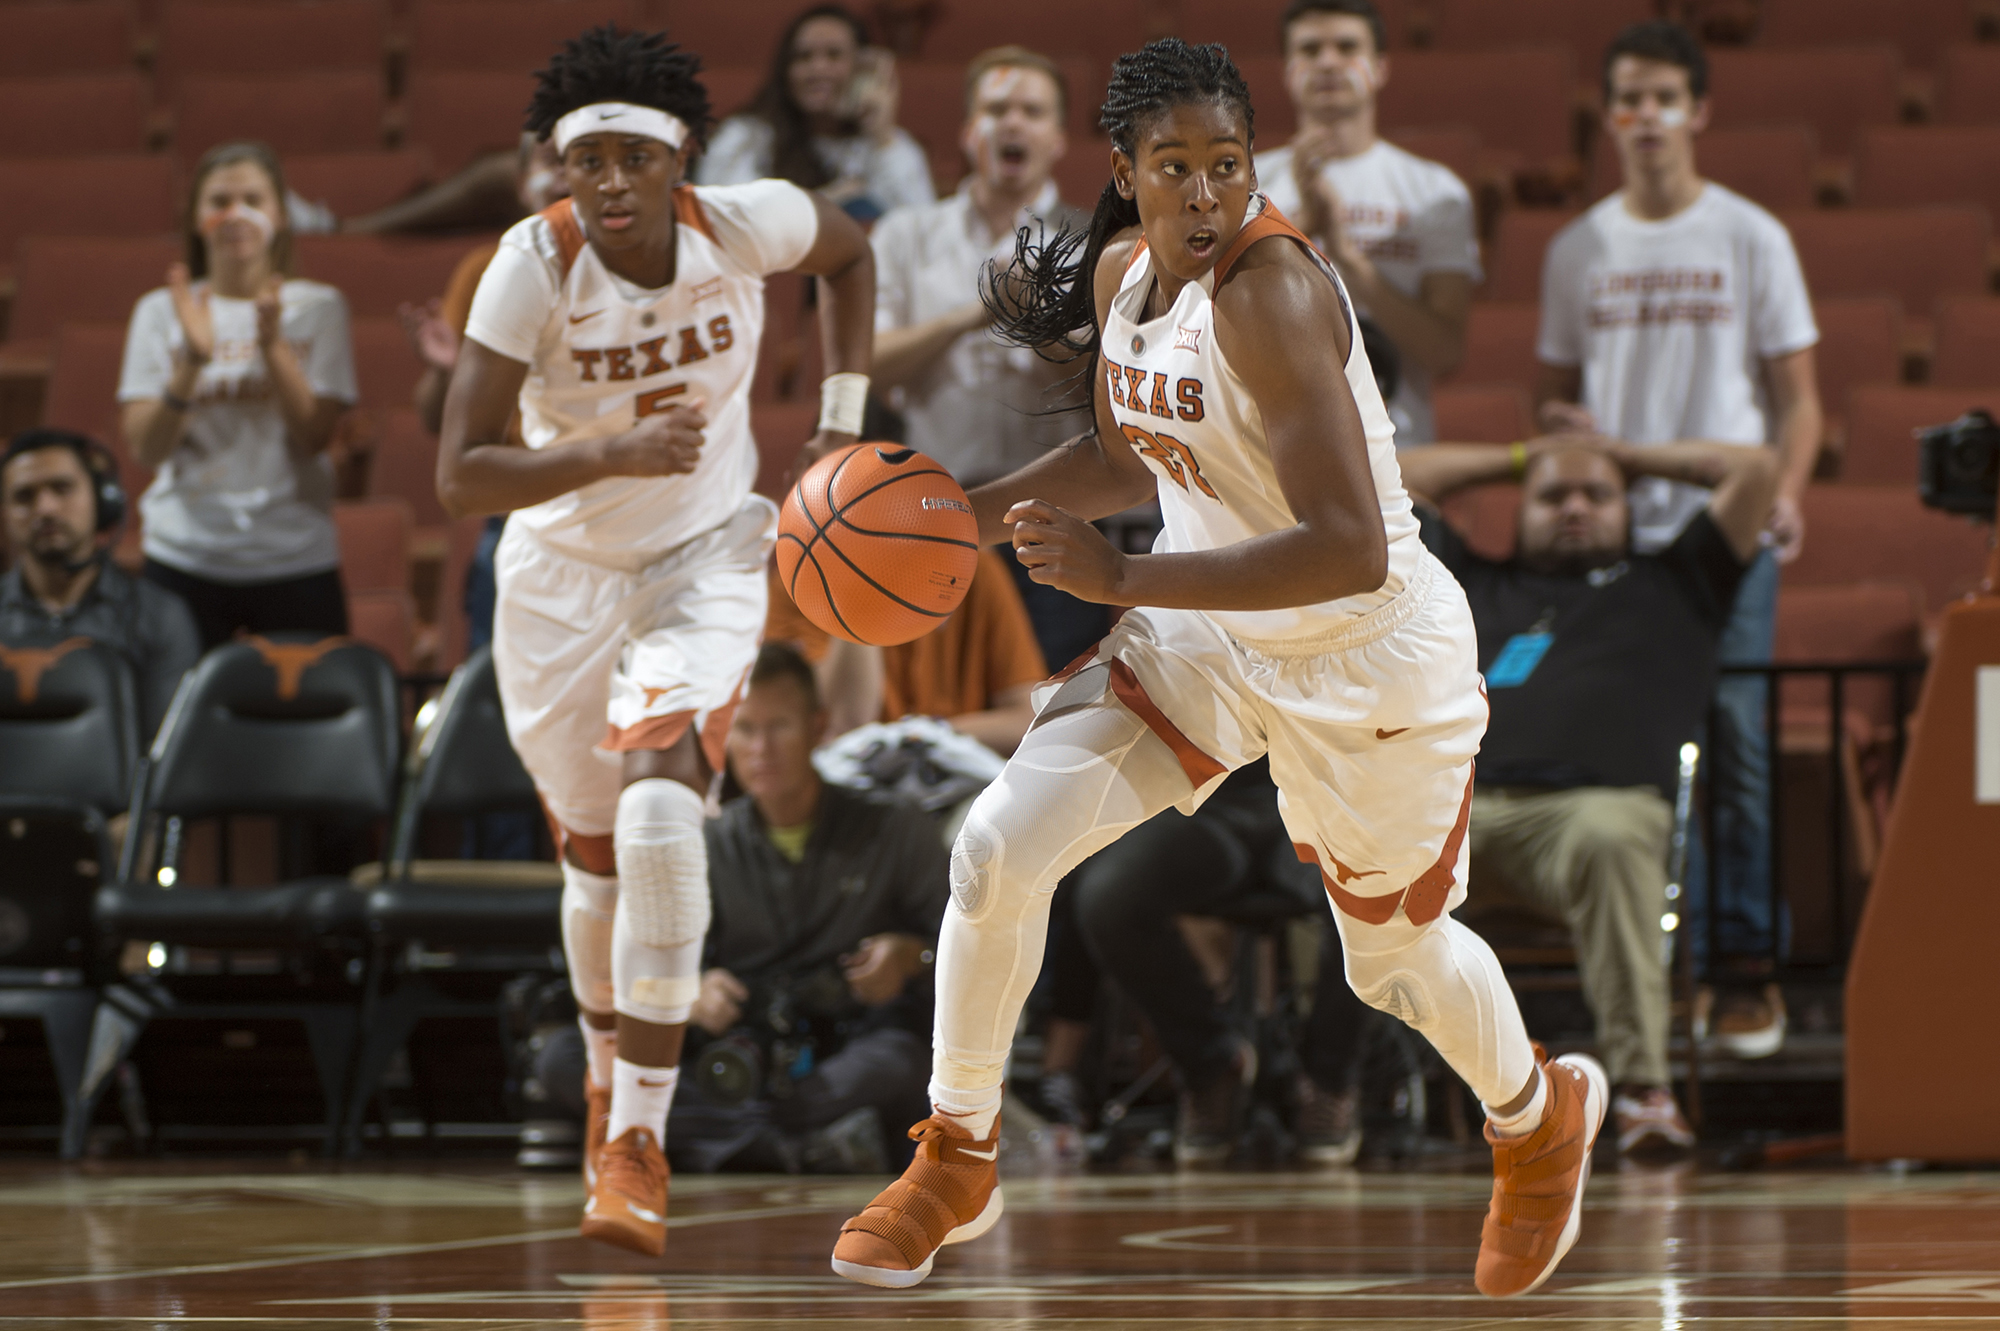 Texas women's basketball crushes Maine in NCAA first round ...